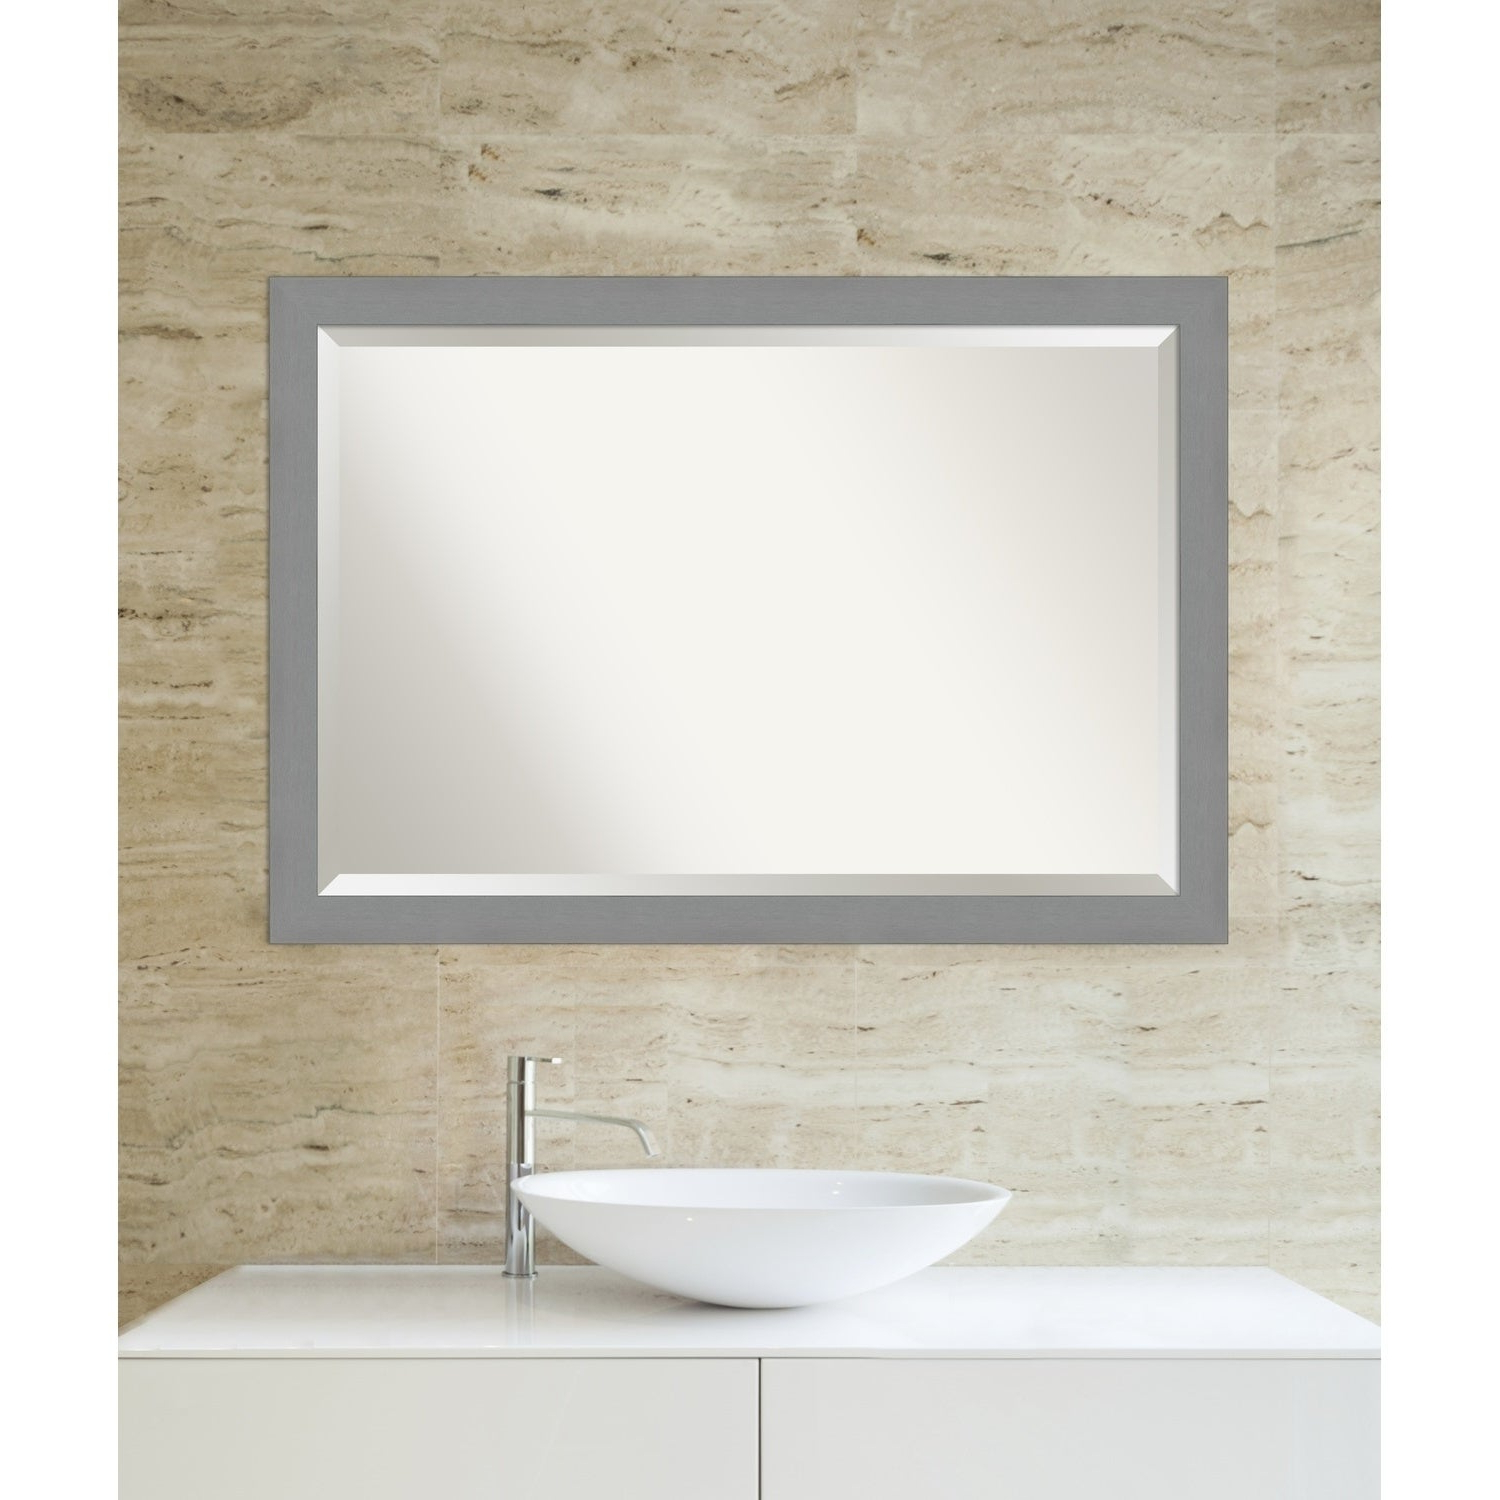 2019 Brushed Nickel Wall Mirrors For Bathroom Pertaining To Porch & Den Yoncalla Brushed Nickel Finish Bathroom Vanity Wall Mirror (View 12 of 20)